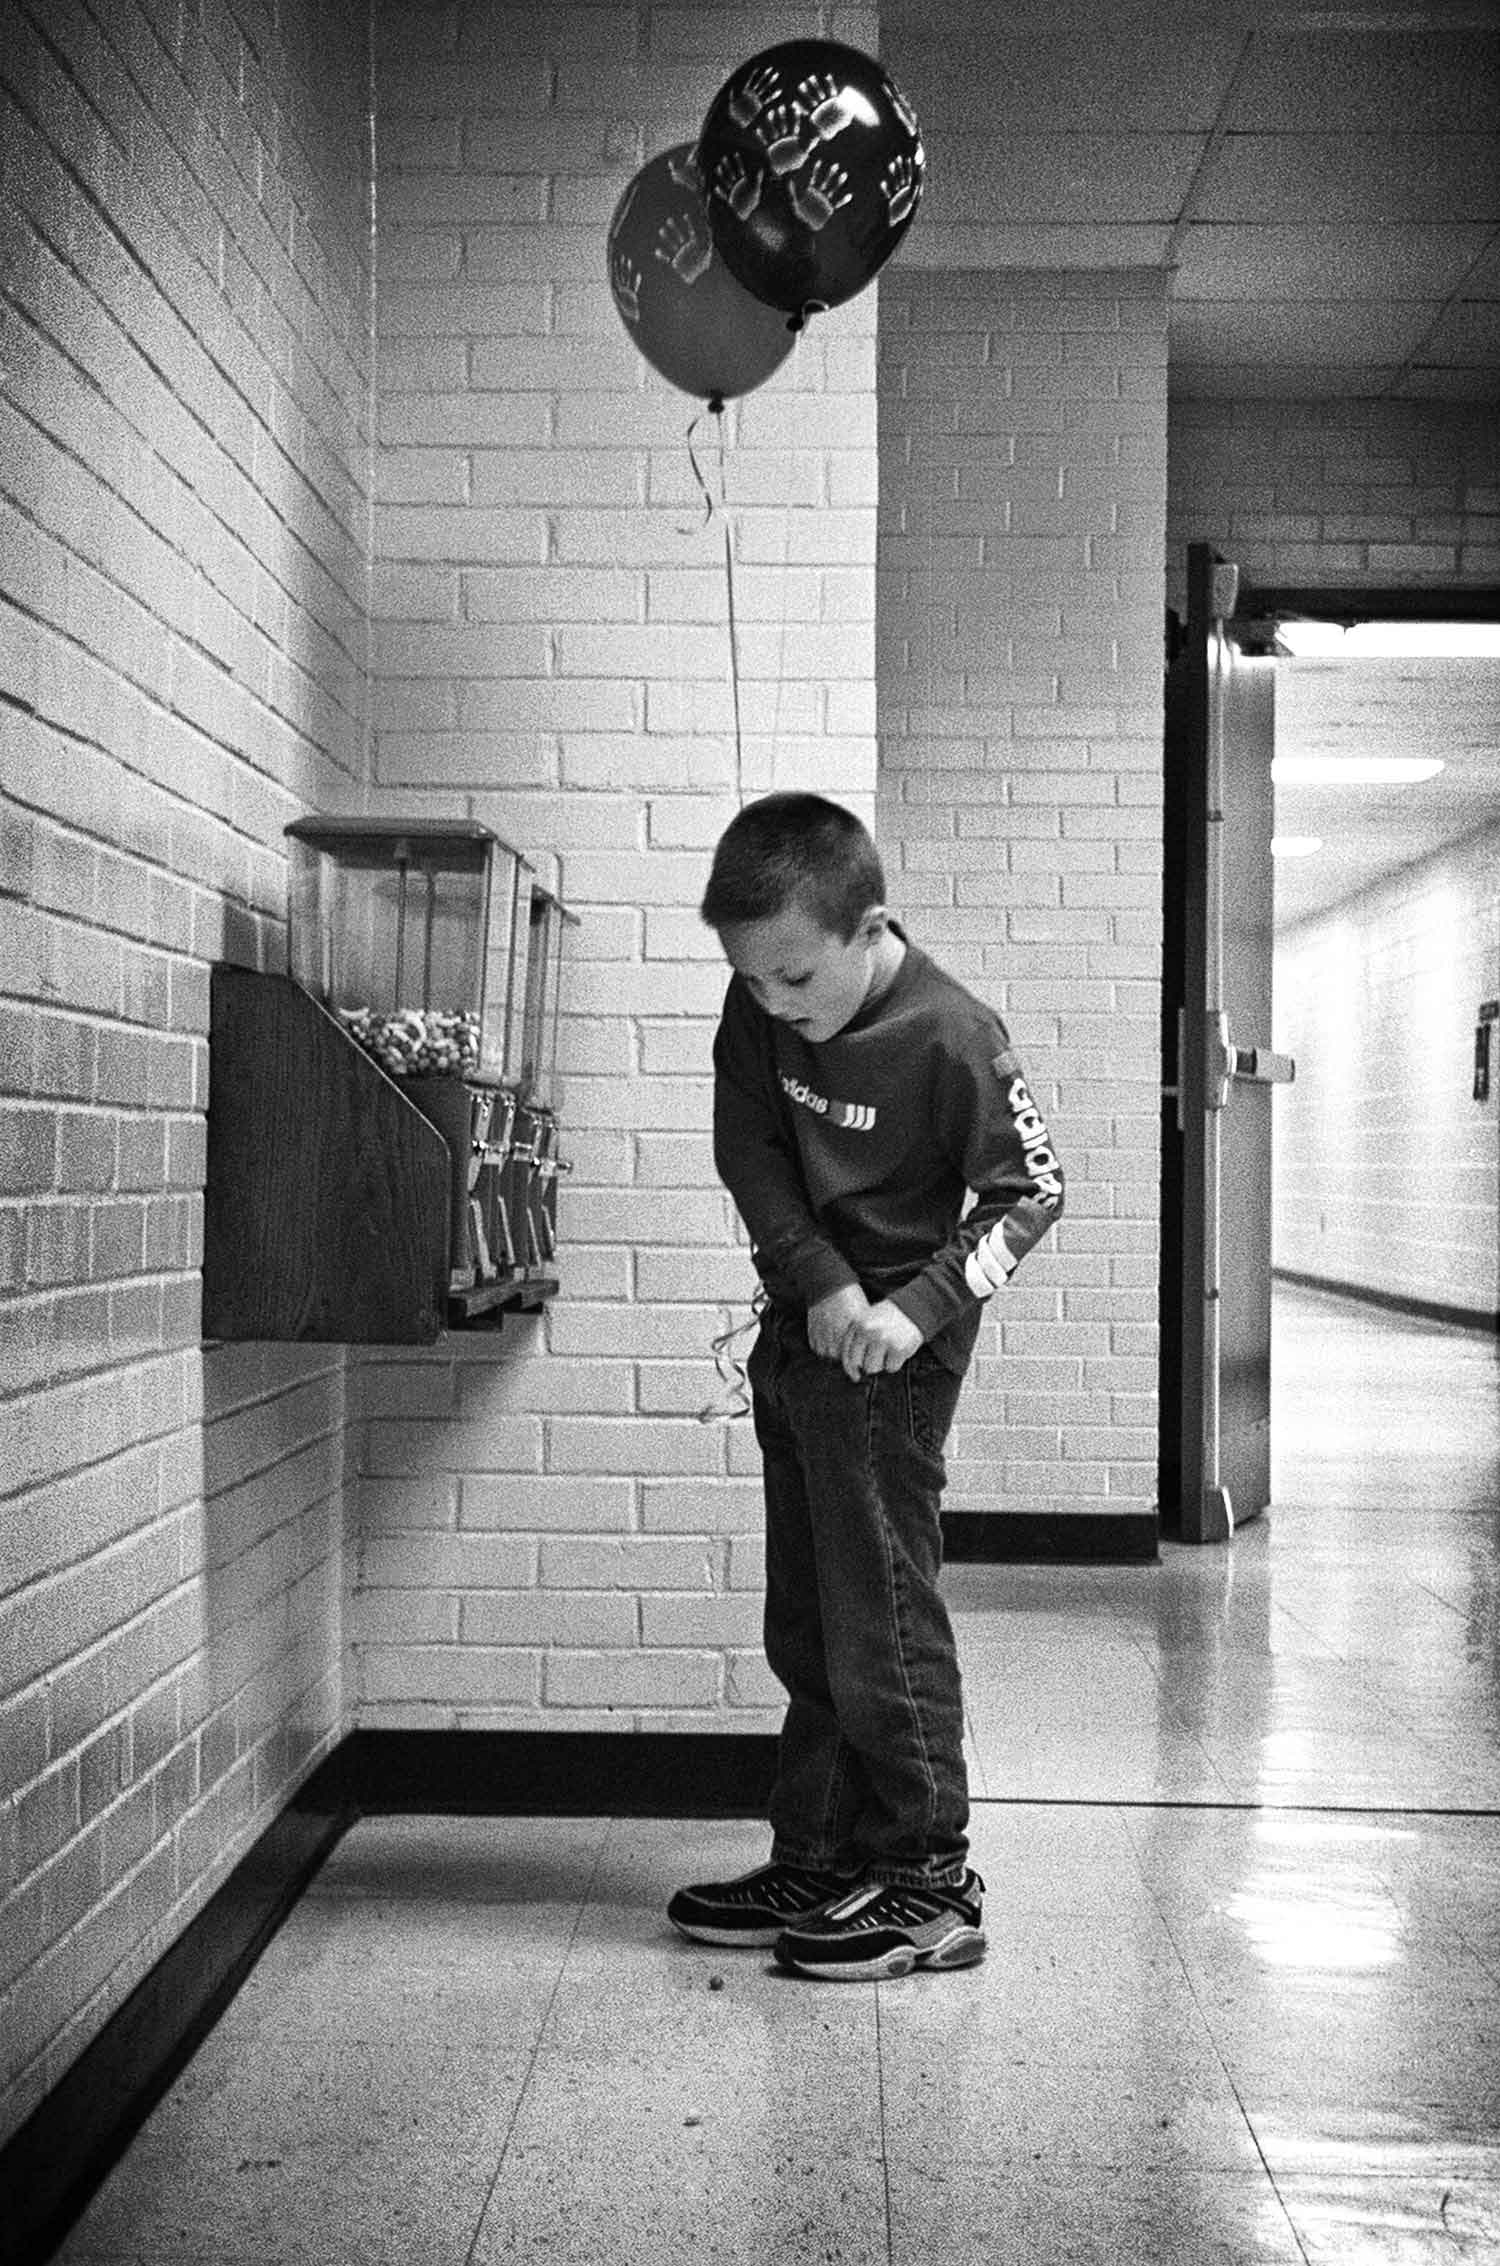 Balloons and candy - what more could a kid want? Kindergartener Seth Pebley digs for change in the hallway of Valley View Elementary. Photo by Jessica White - 2003